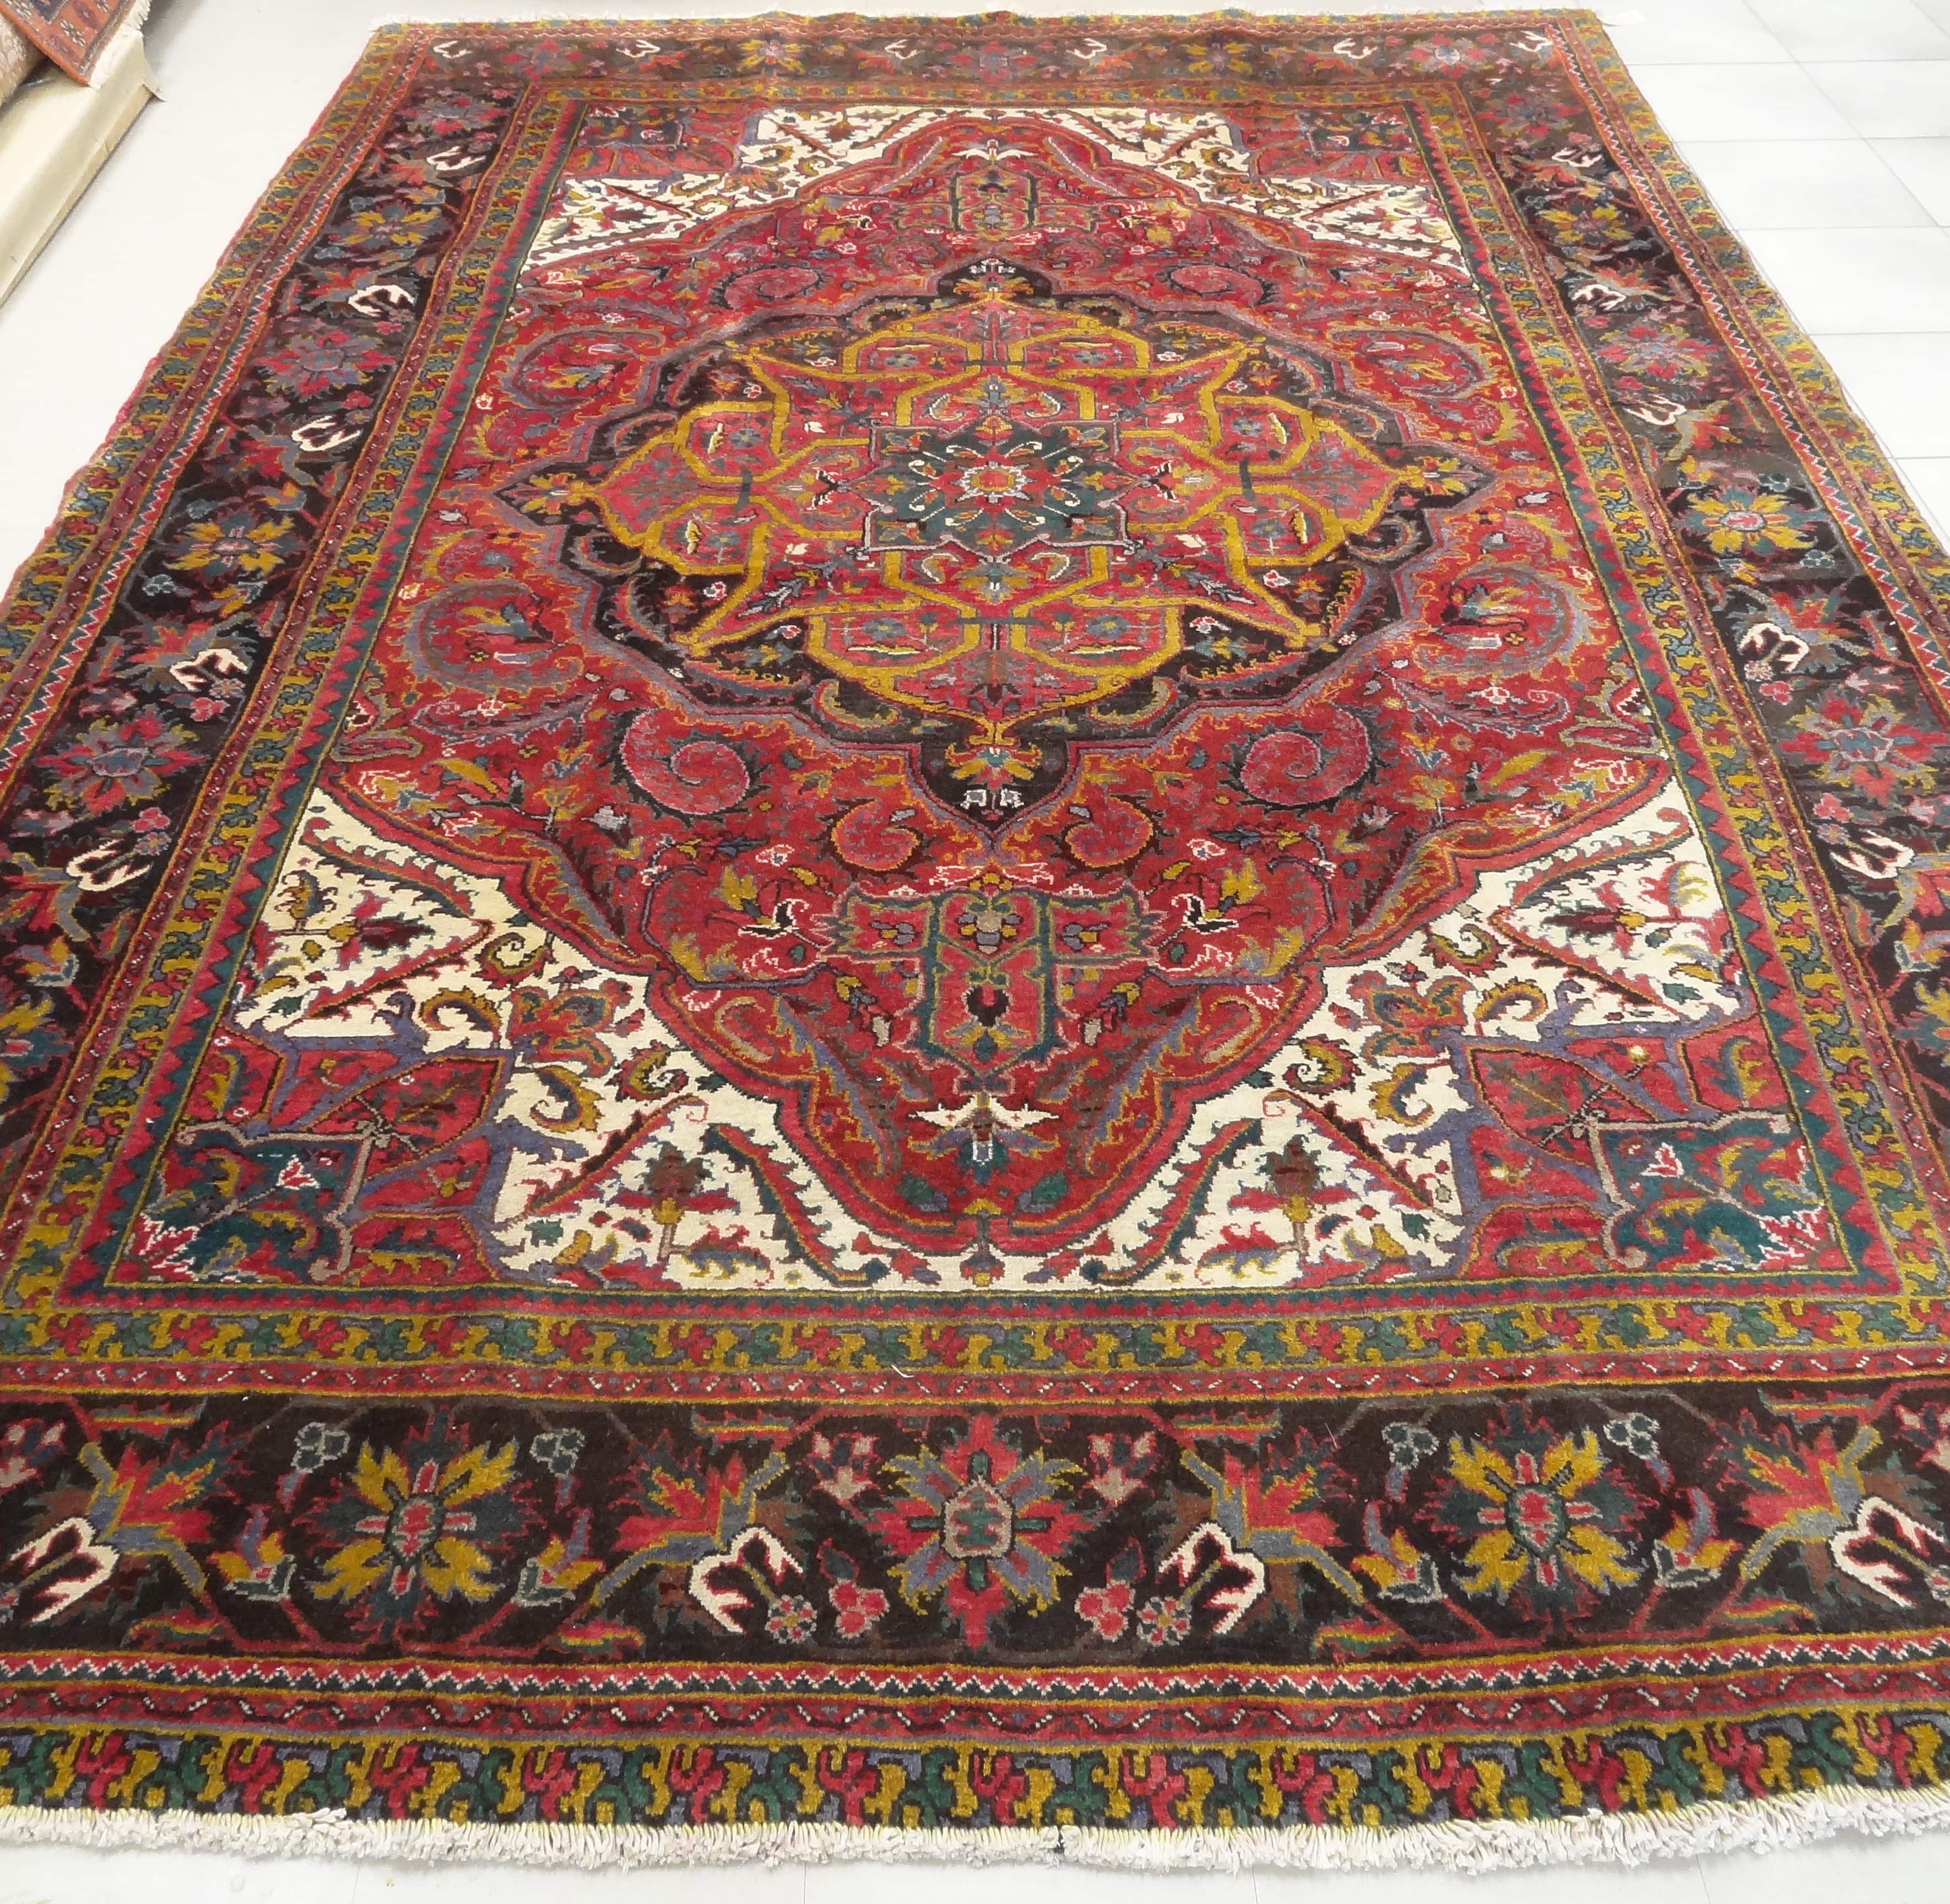 Persian Rugs From Iran: Heriz Persian Rug Heriz Persian Rug Made In Iran, This 60